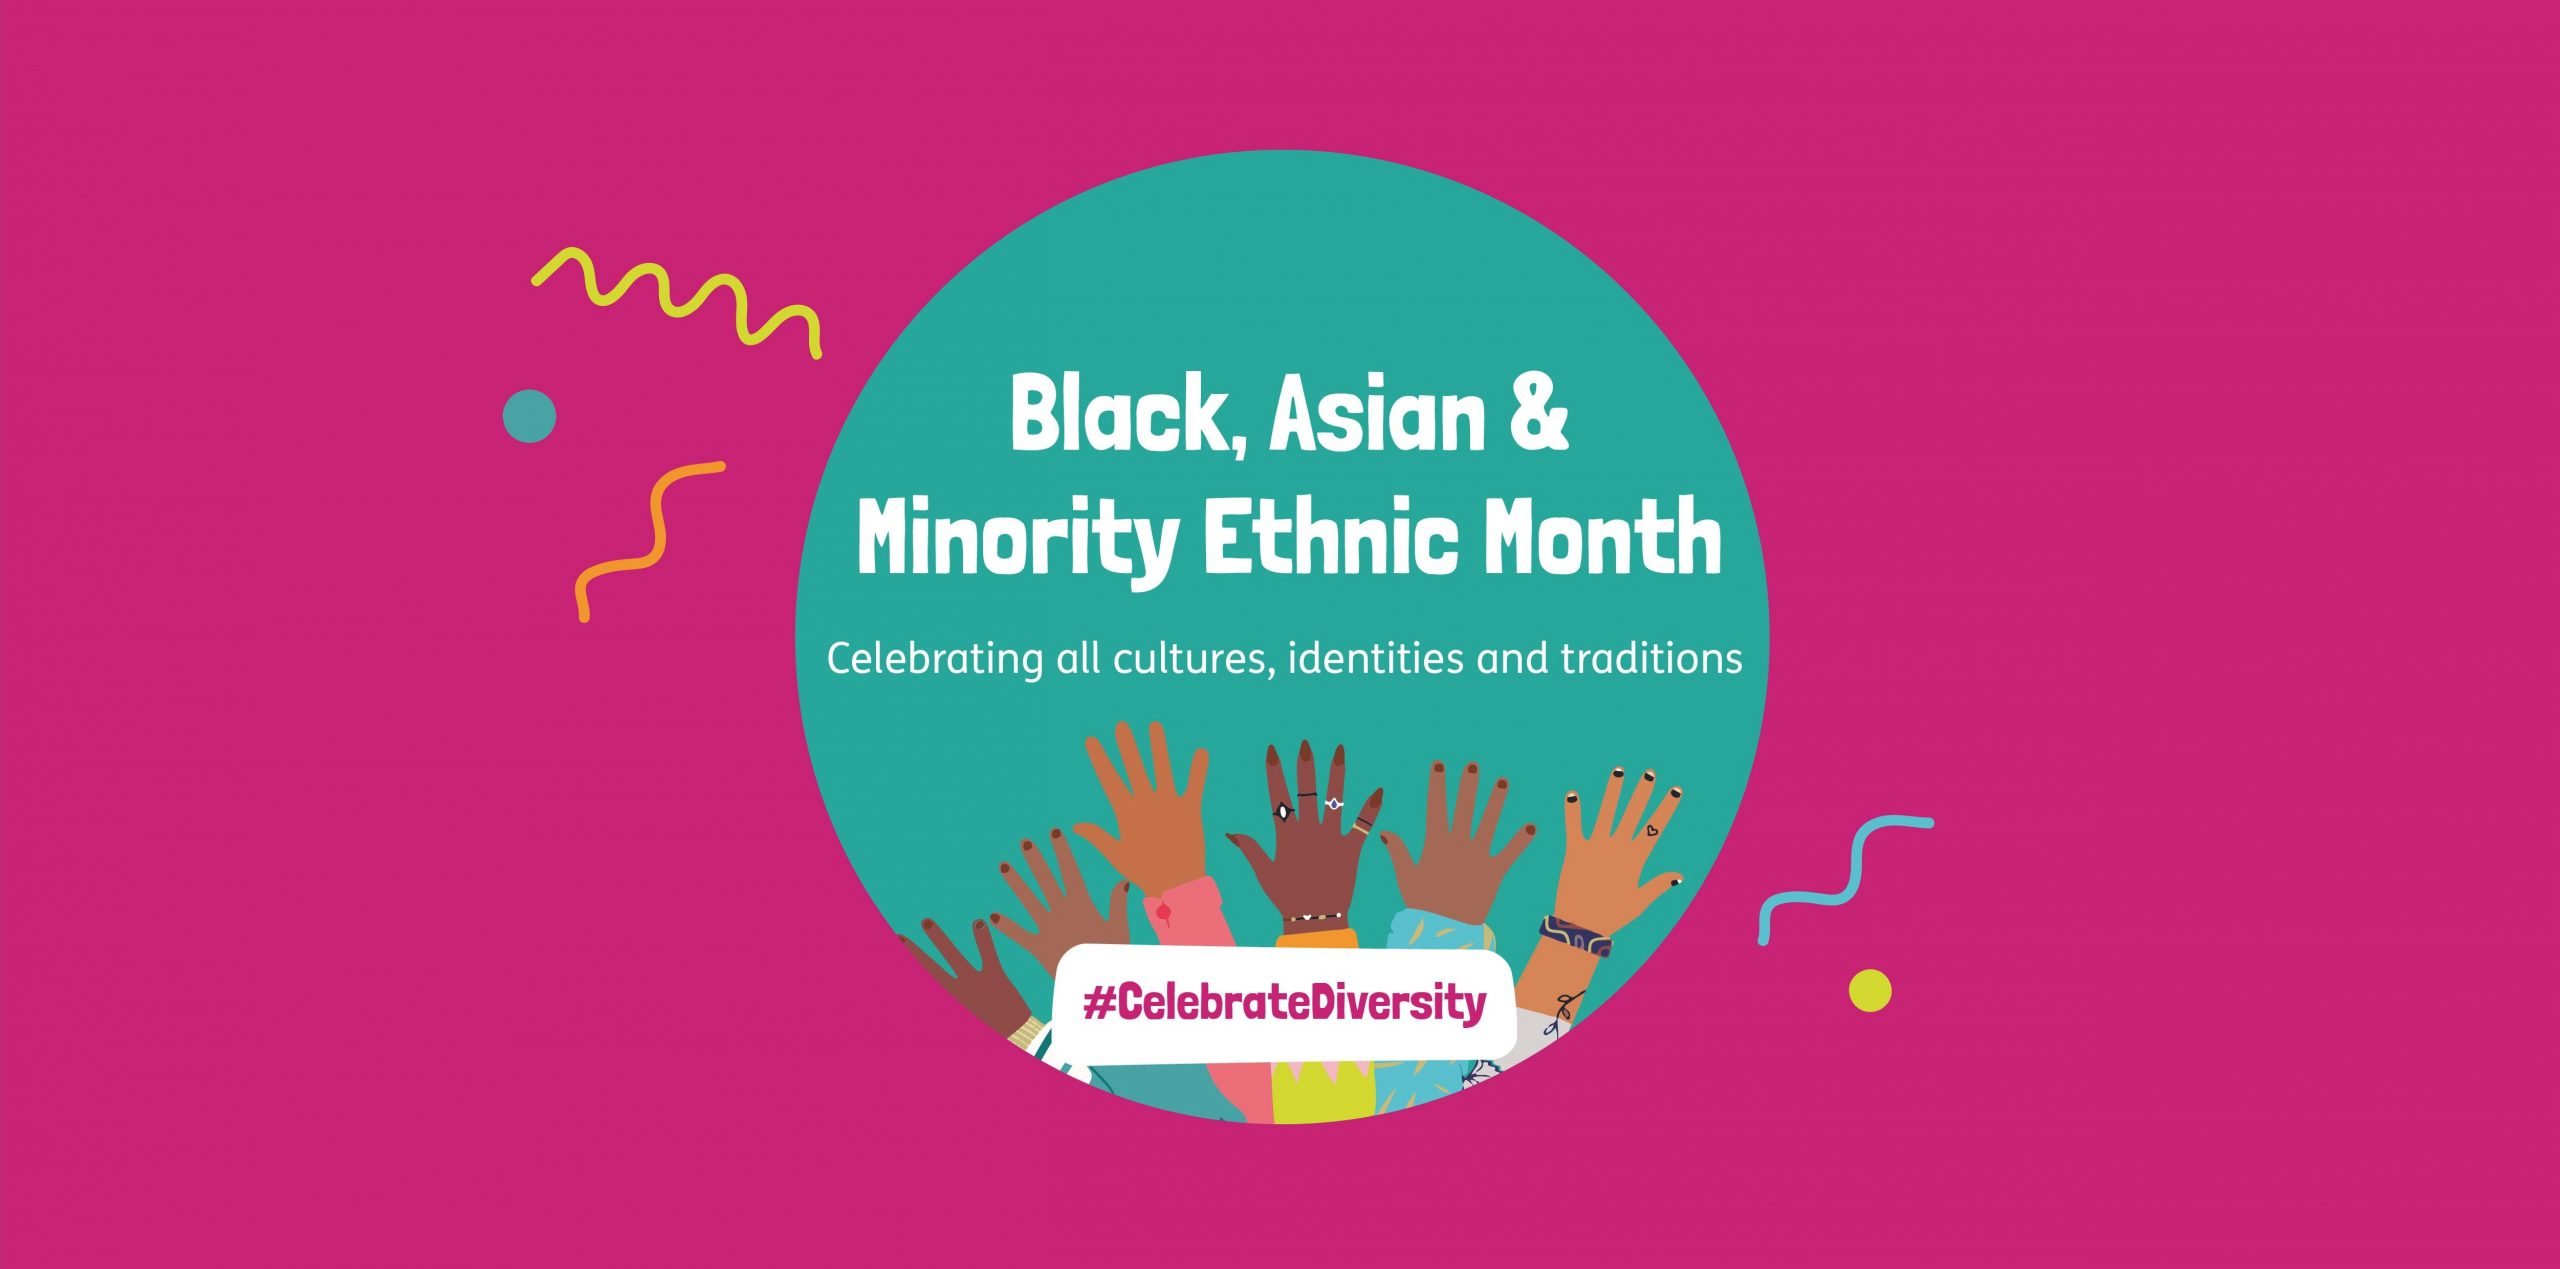 Black, Asian, and Minority Ethnic Month